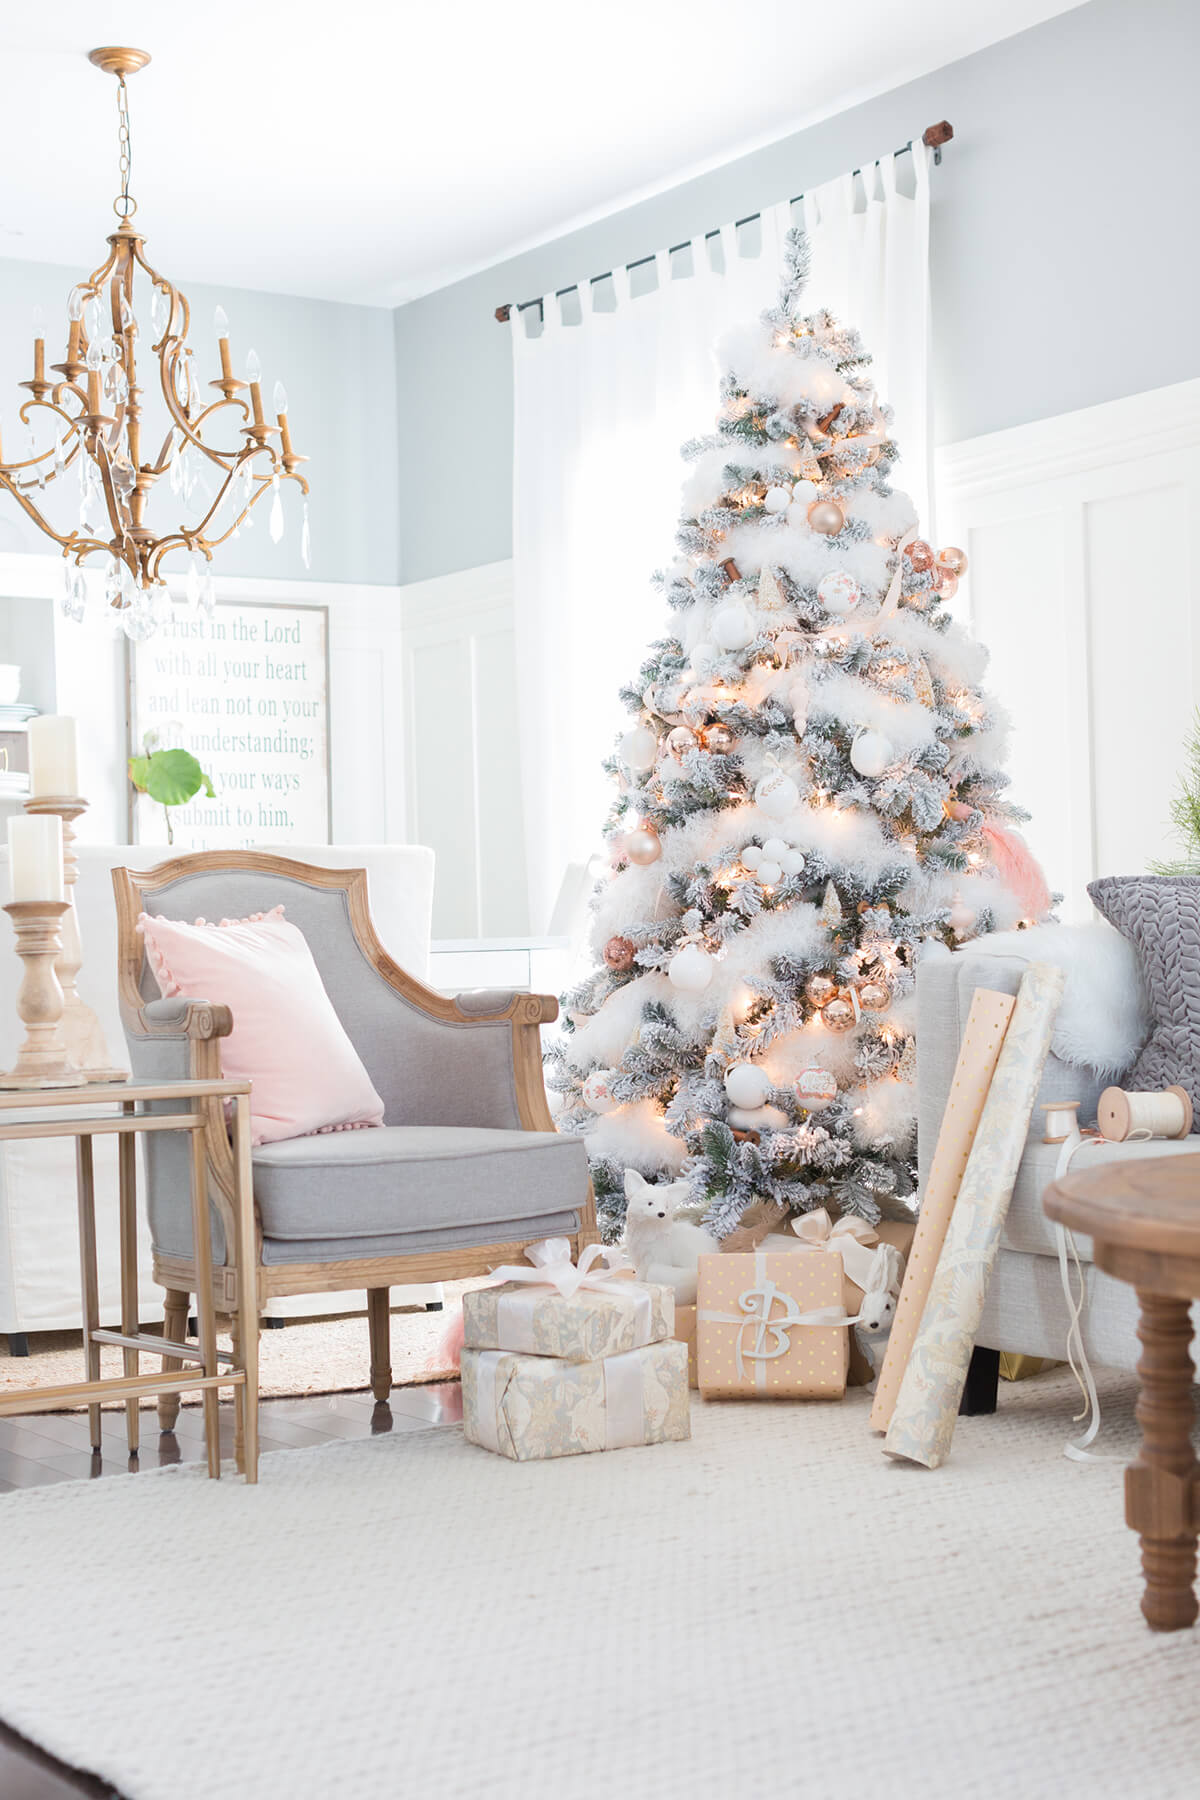 19 gold balls nestled in fluffy white snow - How To Decorate Living Room For Christmas